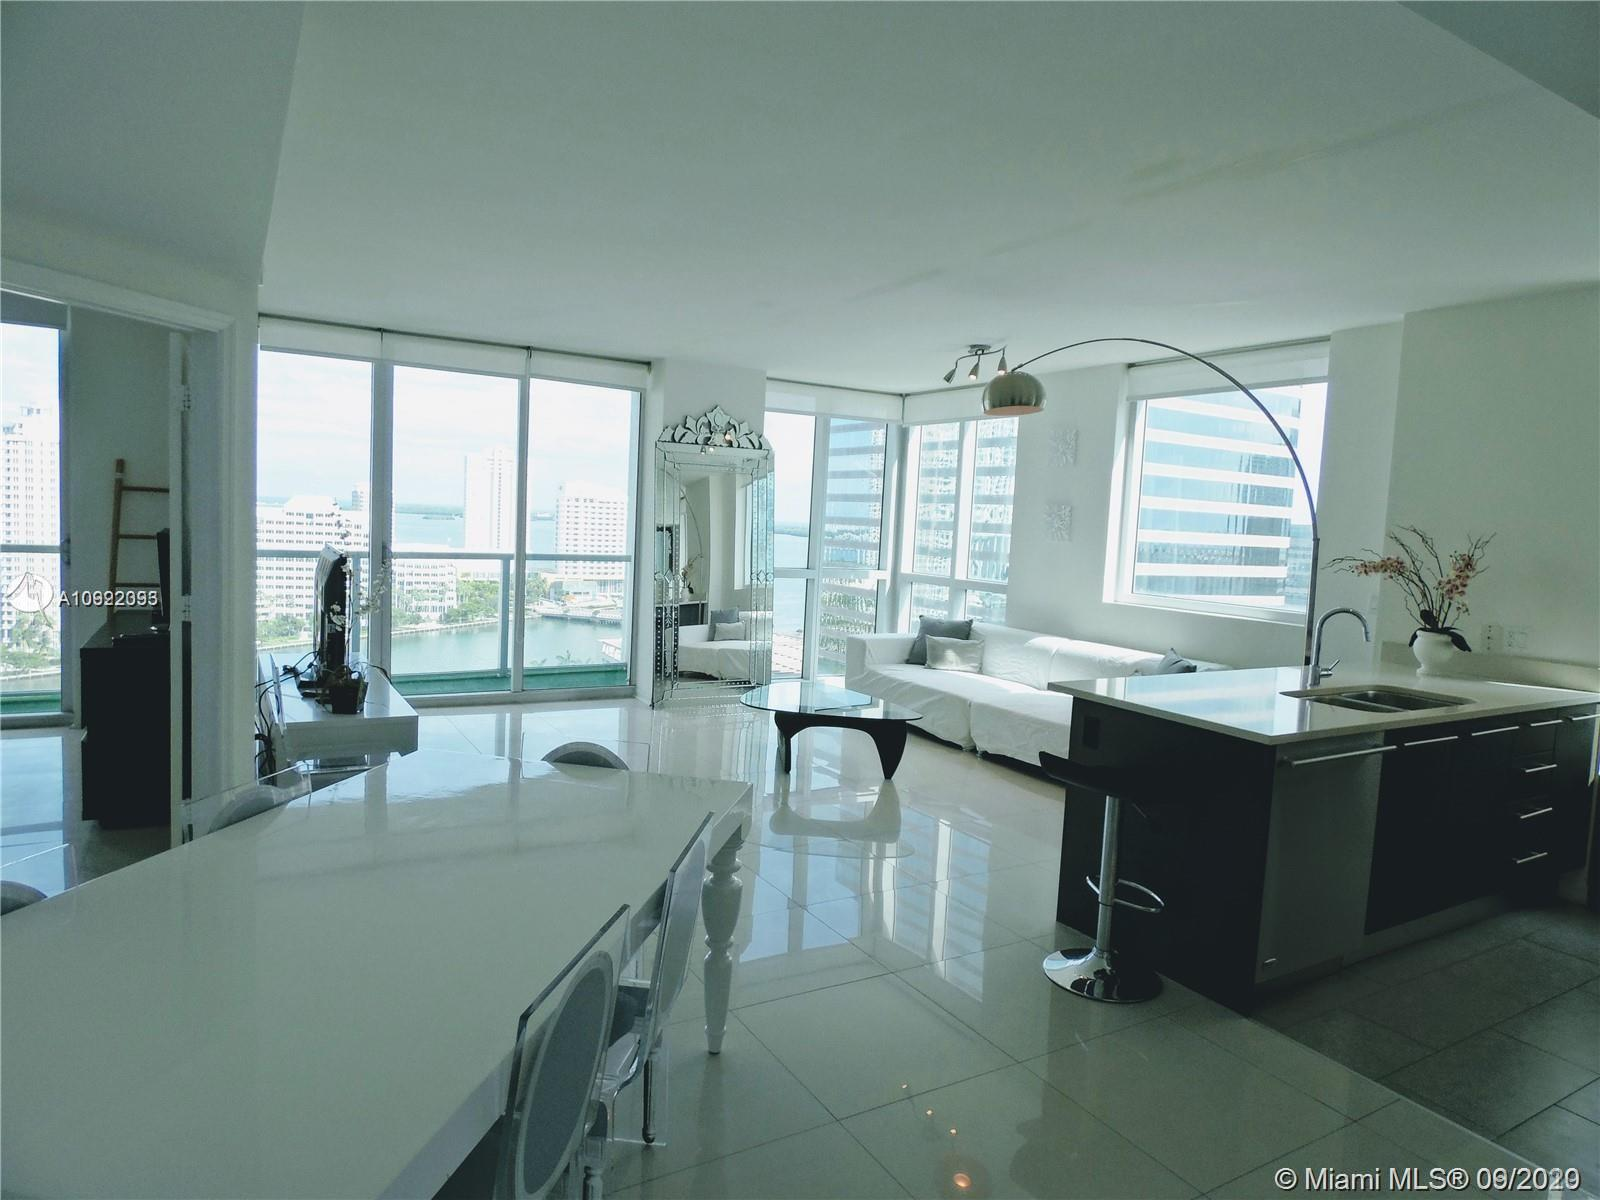 Prestigious 500 Brickell. Simply the Most Sought-After 2 Bedroom corner unit with Direct Water-view. Stunning views to the Bay, Brickell Key & Brickell Avenue. Fully furnished unit with marble floors, Italian kitchen with GE monogram appliances. Master bath with separate shower & Jacuzzi. The building offers concierge service, 24-hour security, 3 Swimming Pools, a gym, spa, movie theater, and more!